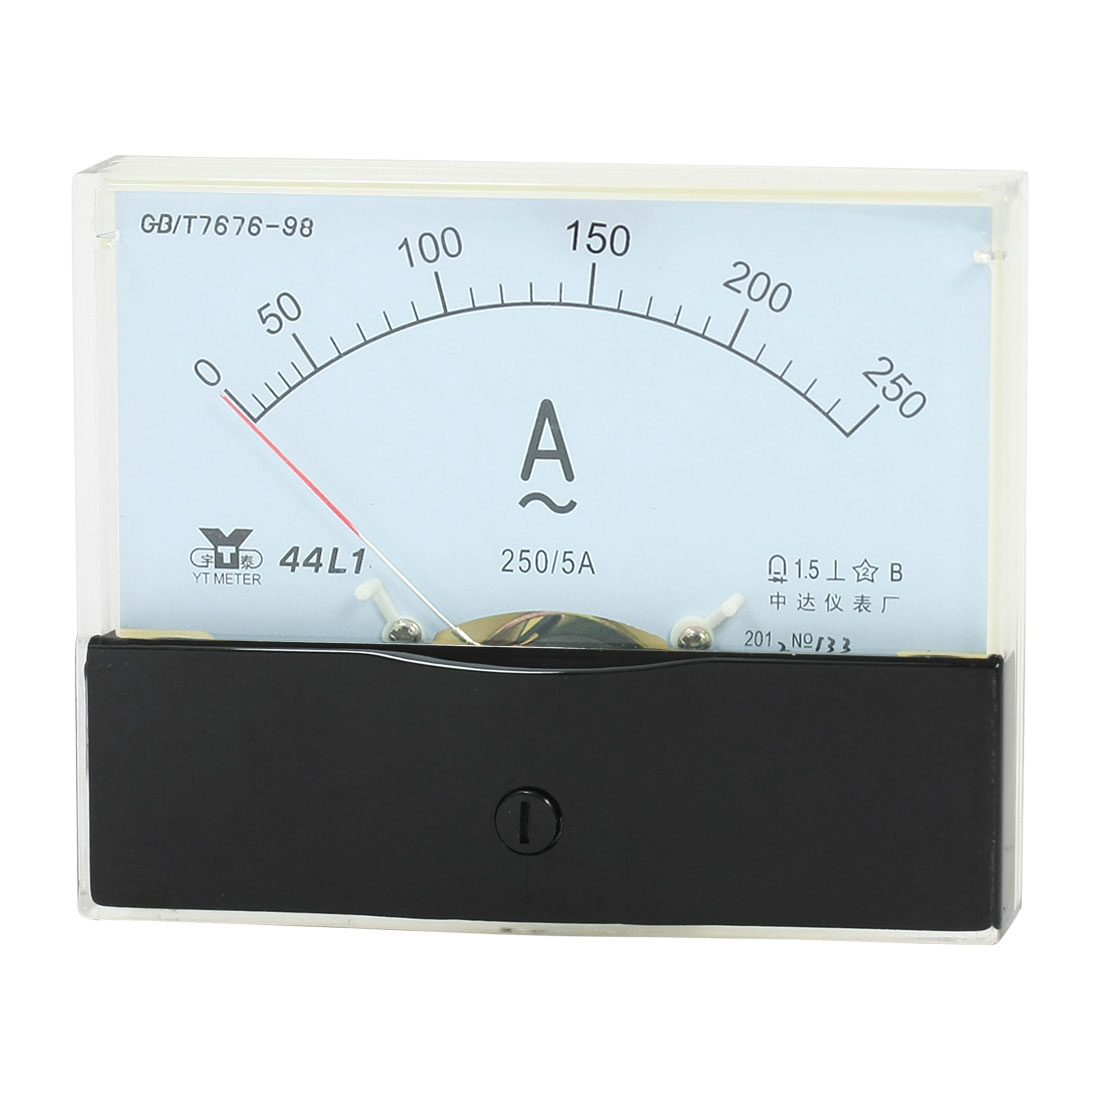 Measurement Tool Panel Mount Analog Ammeter Gauge AC 0 - 250A Measuring Range 44L1